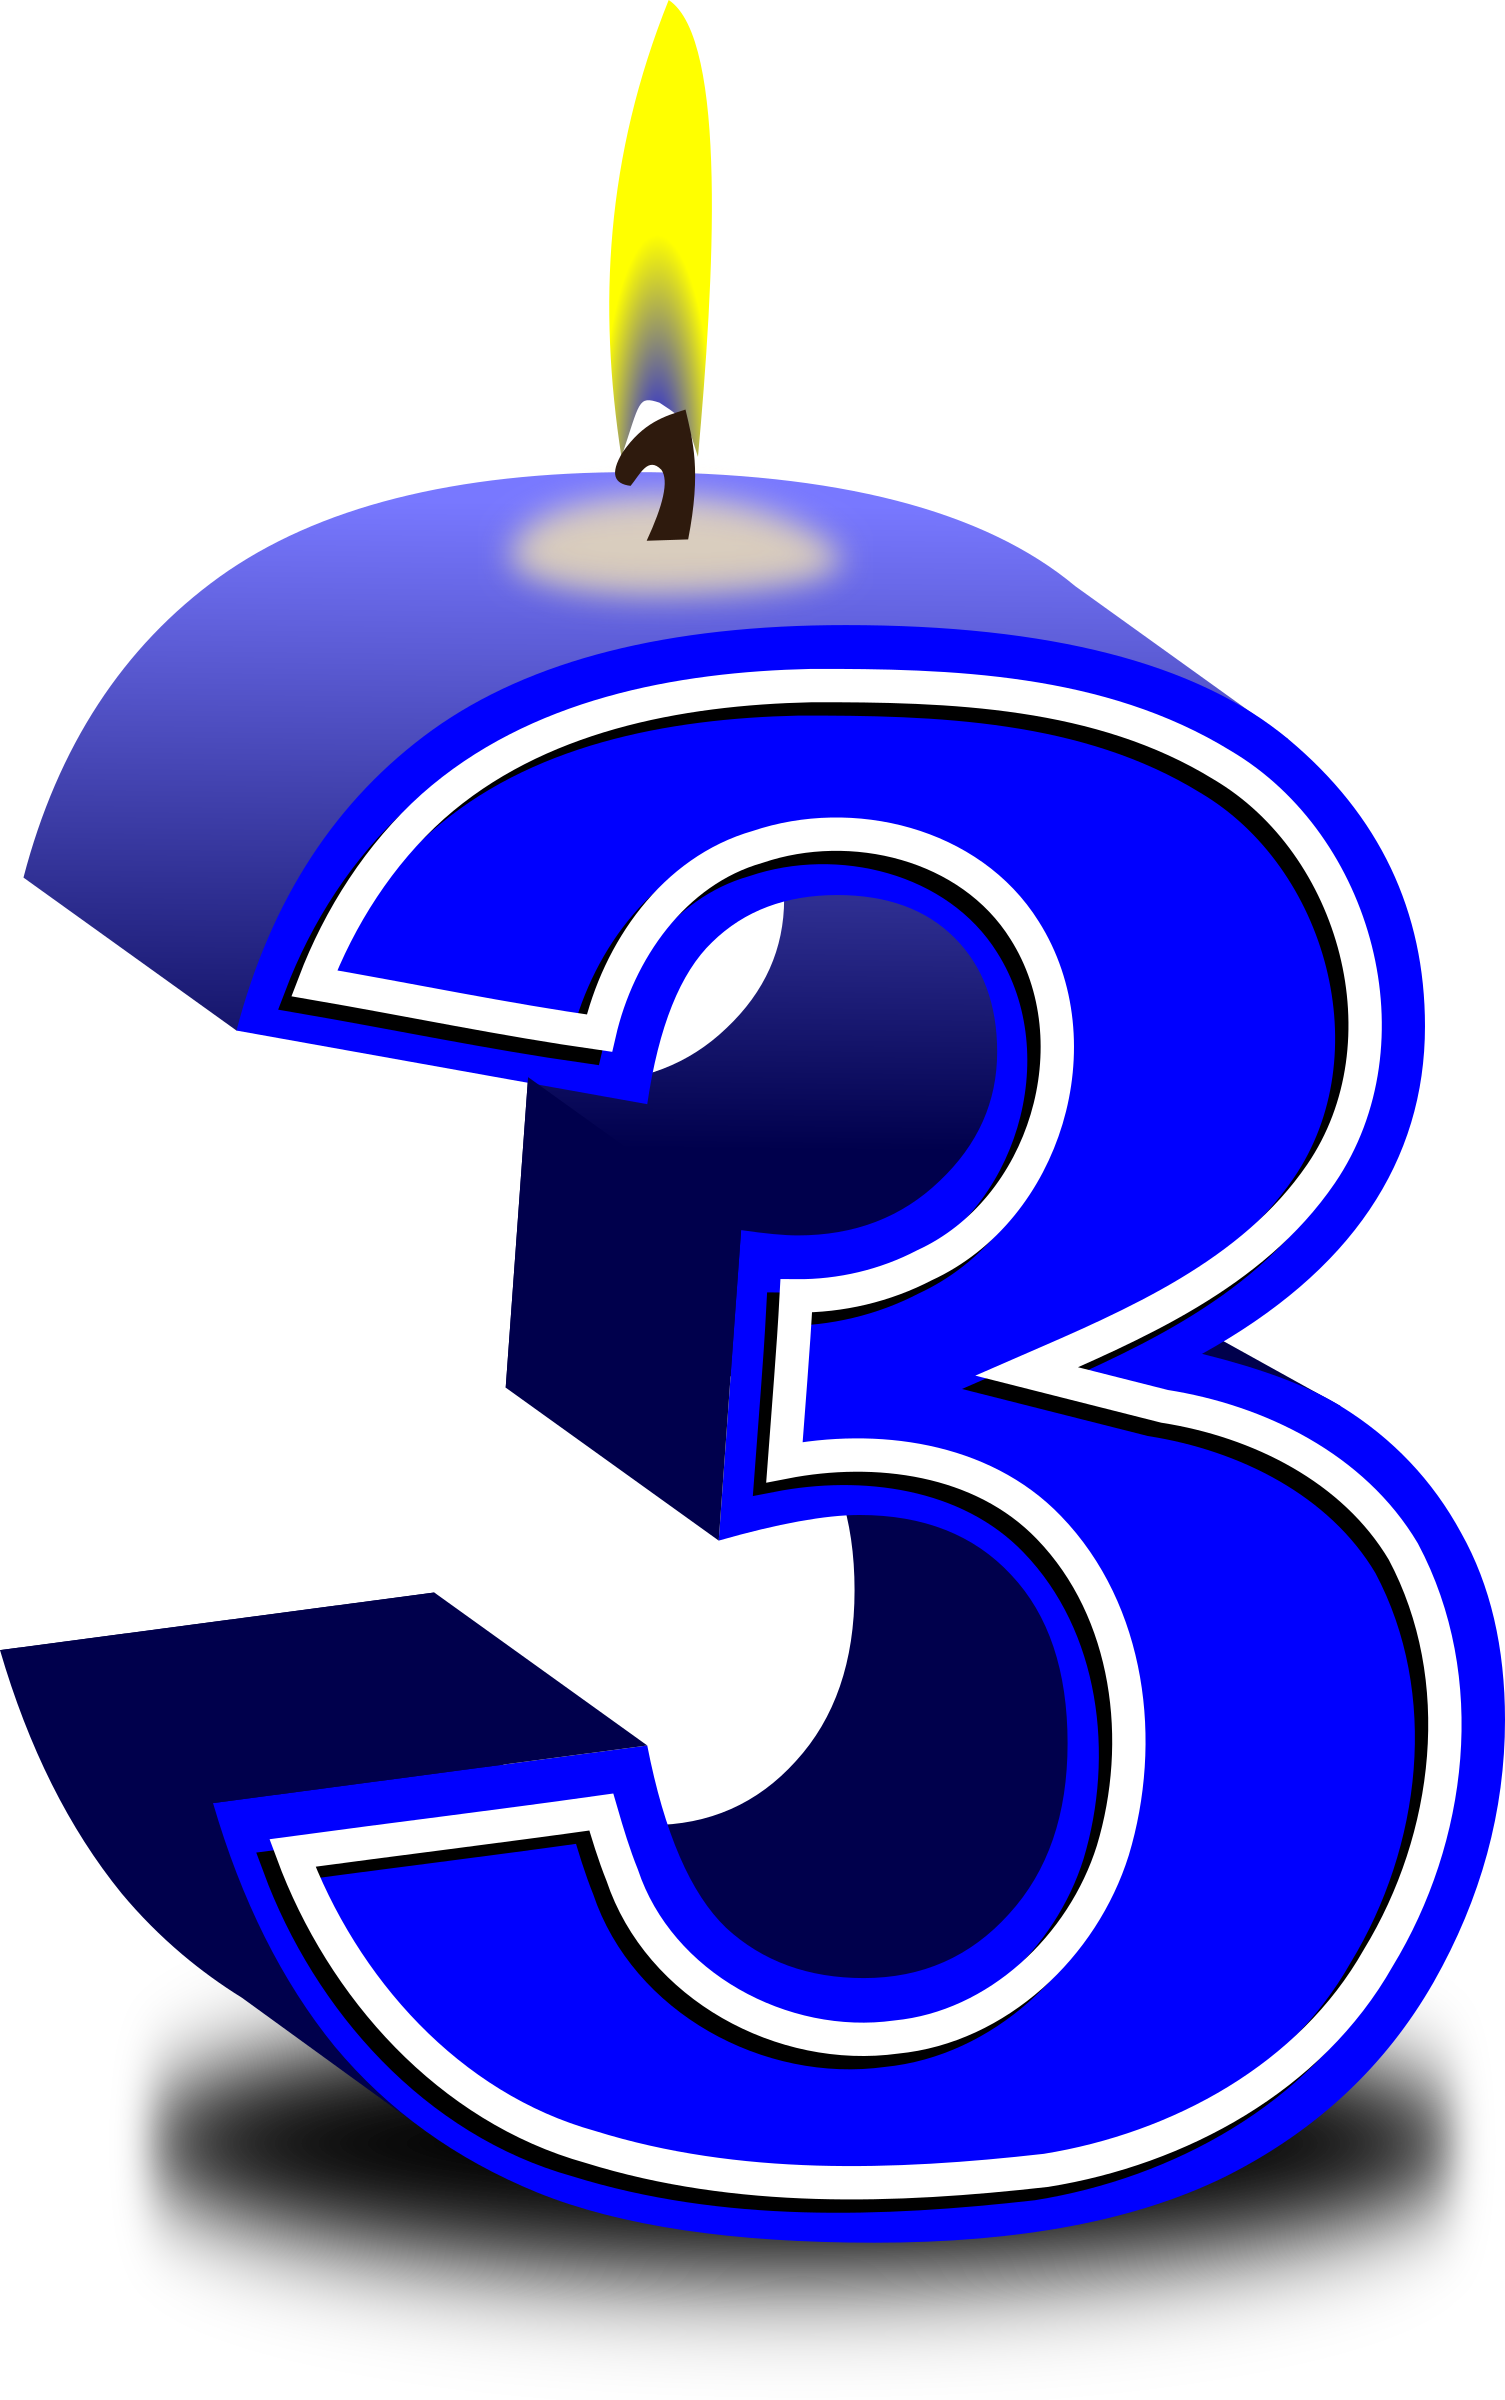 Number 3 Clipart Blue  Number 3 Blue Transparent Free For